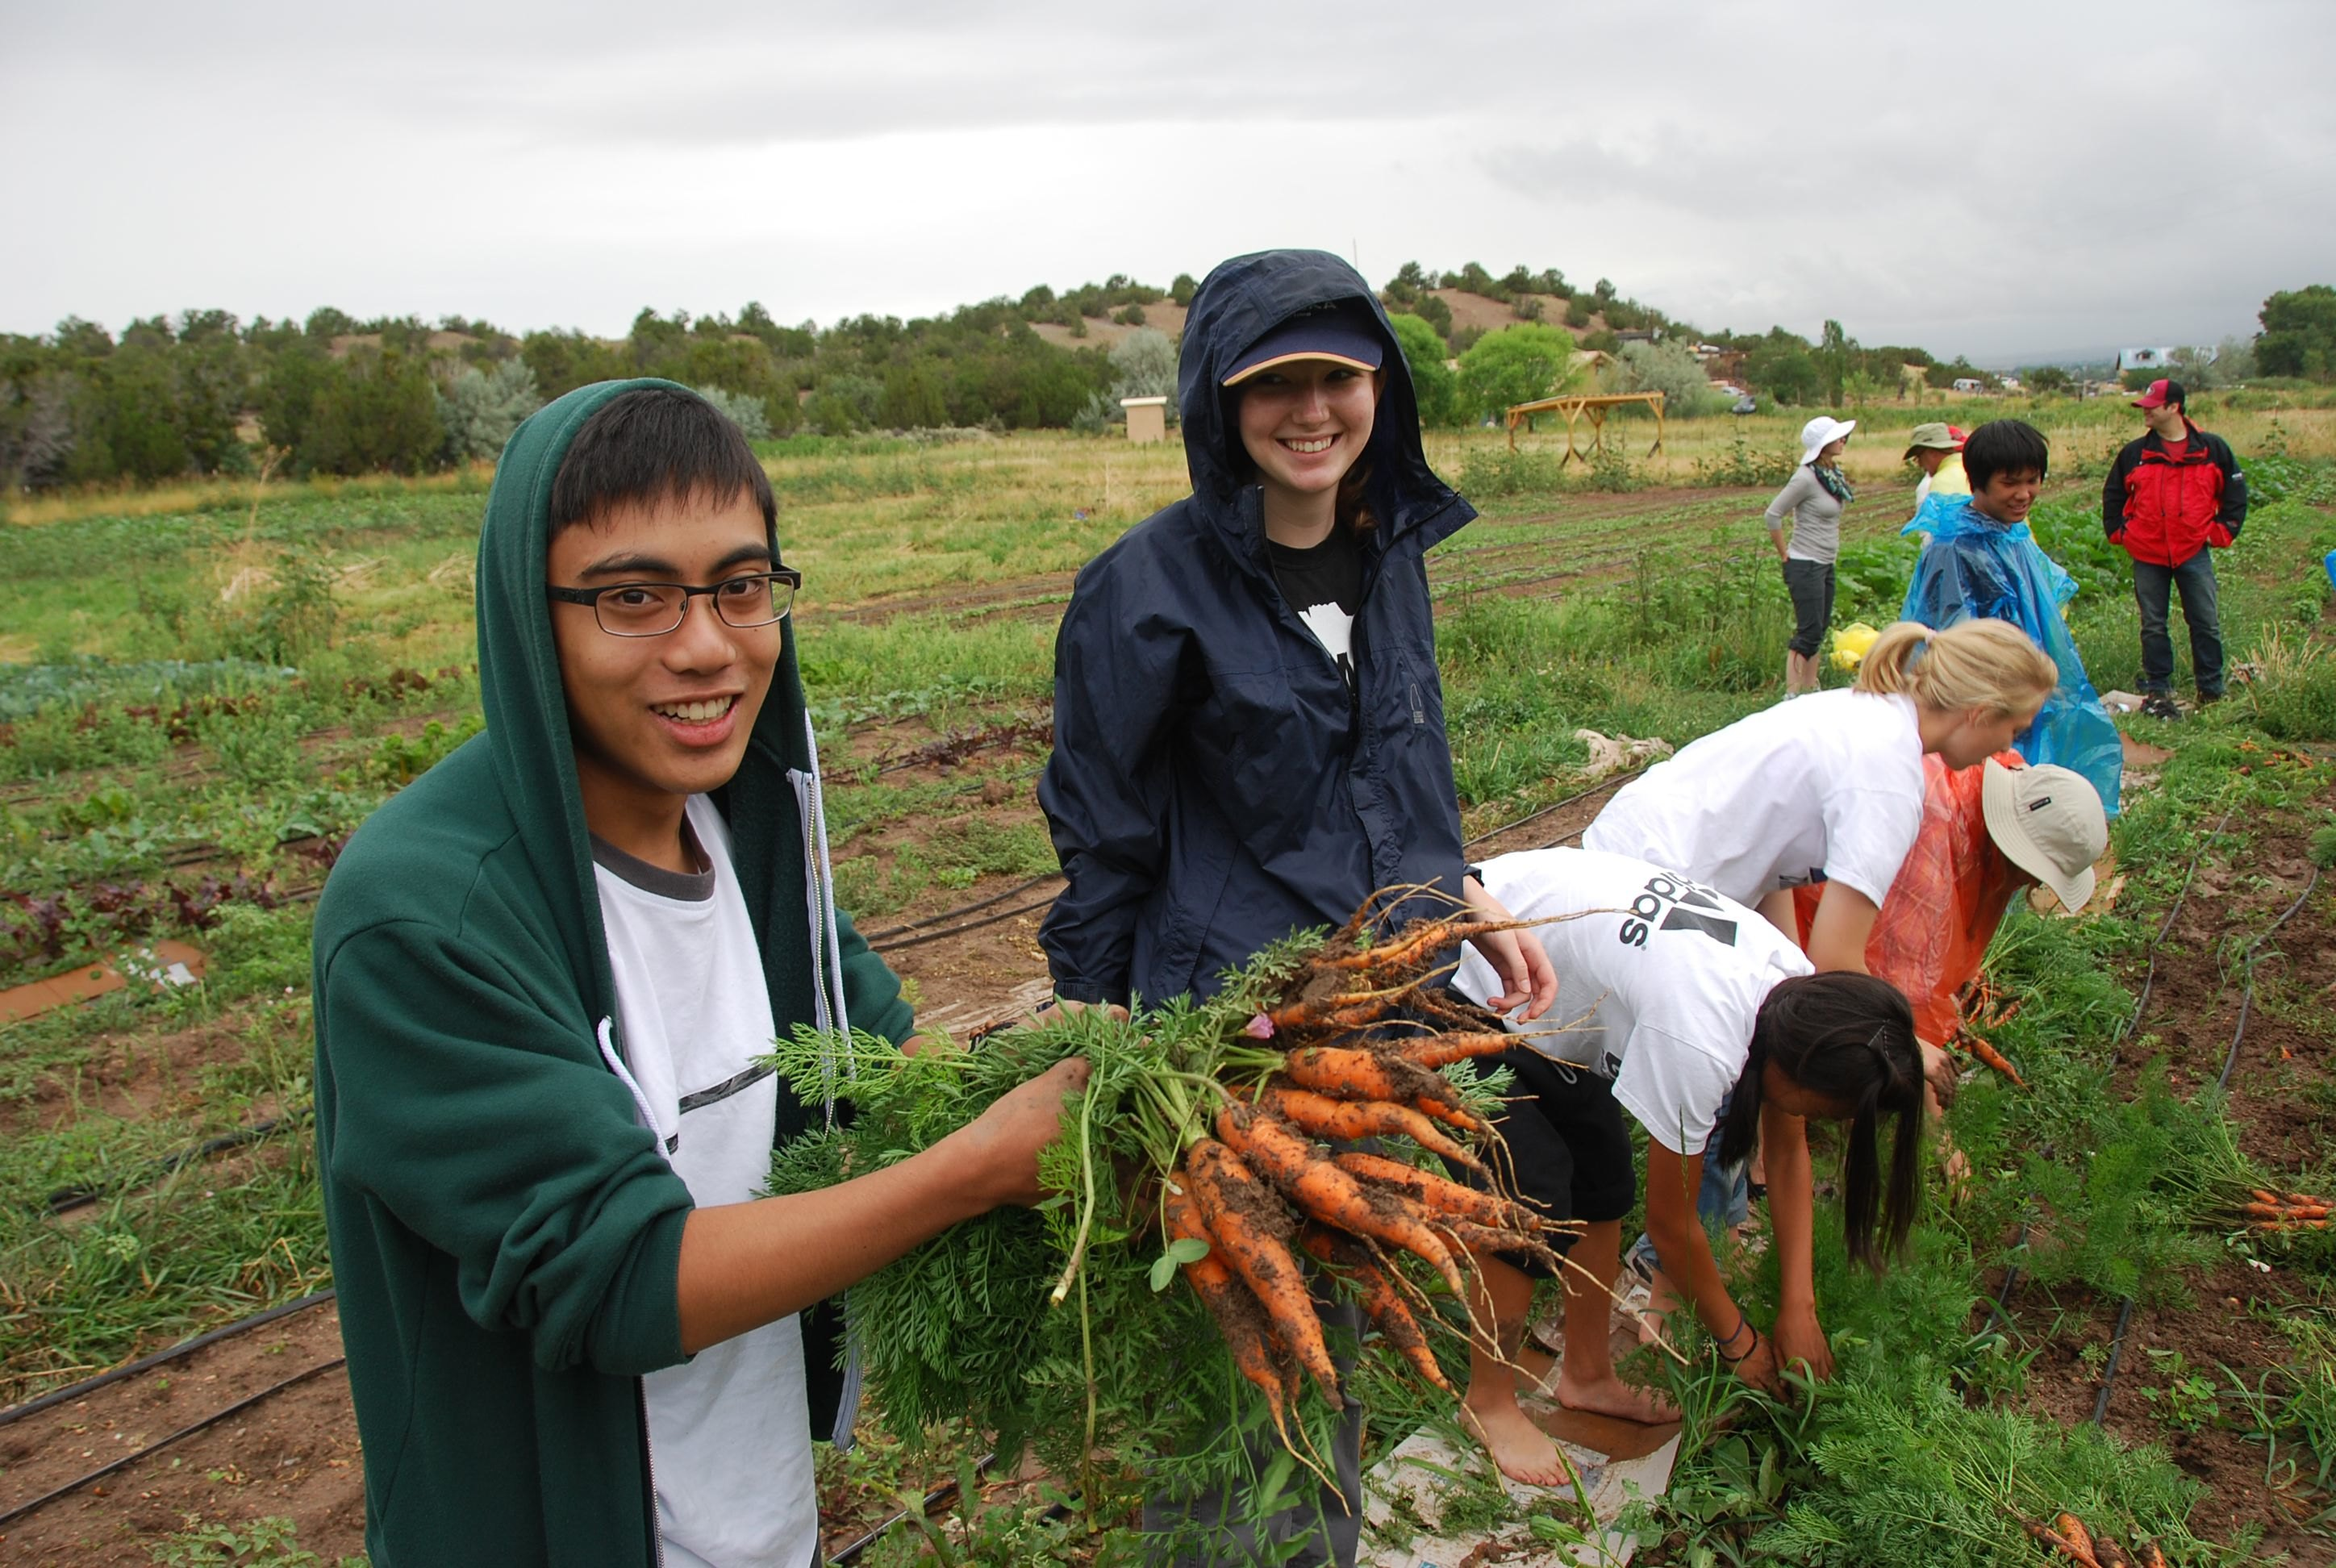 PACOIMA - Community Immersion 2008